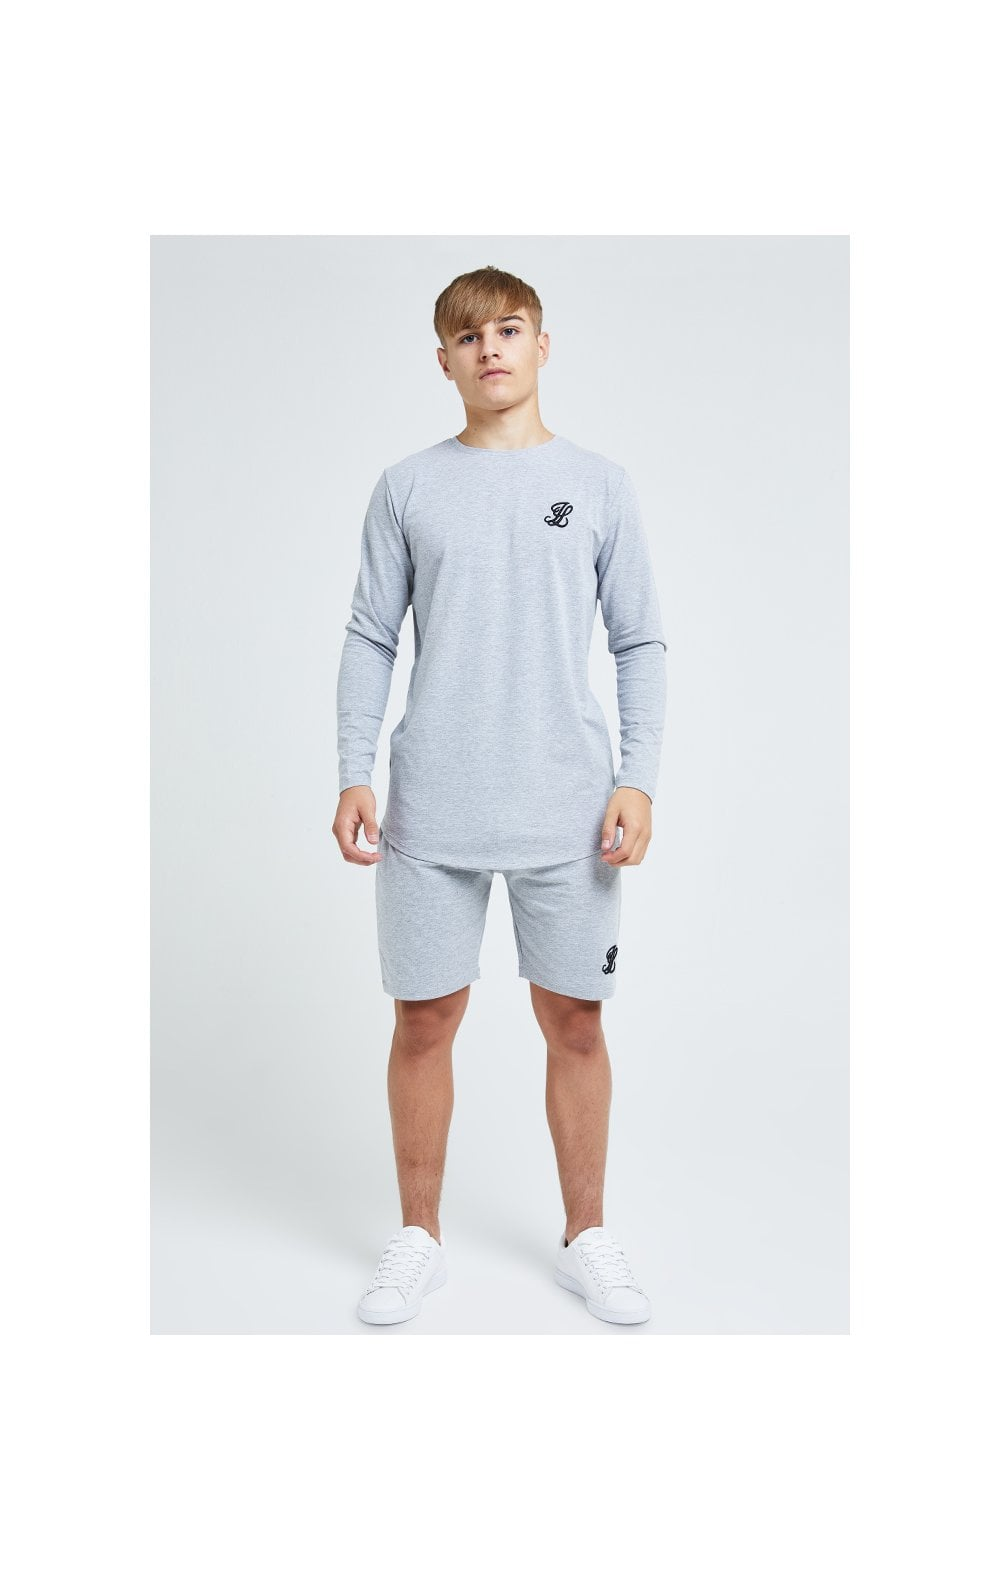 Illusive London L/S Core Tee - Grey Marl (5)